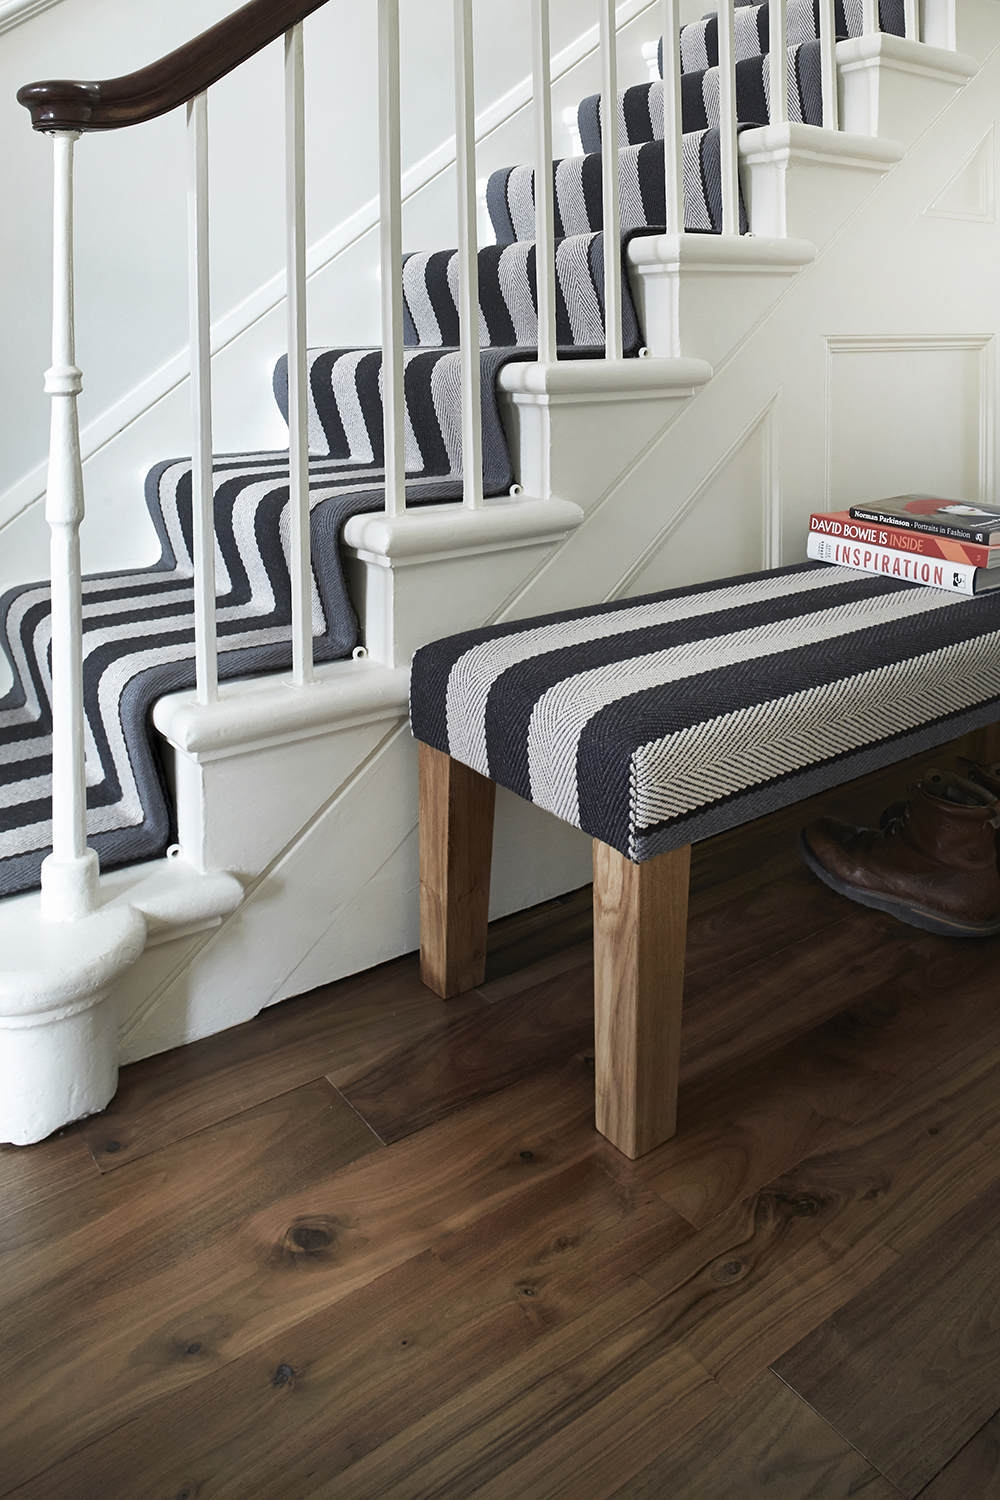 Inspiration Lifestyle Gallery Fitzroy Black Bench Roger   Roger Oates Stair Runners   Wooden   Wood Staircase Carpet   Corner   Pinterest   Carpet